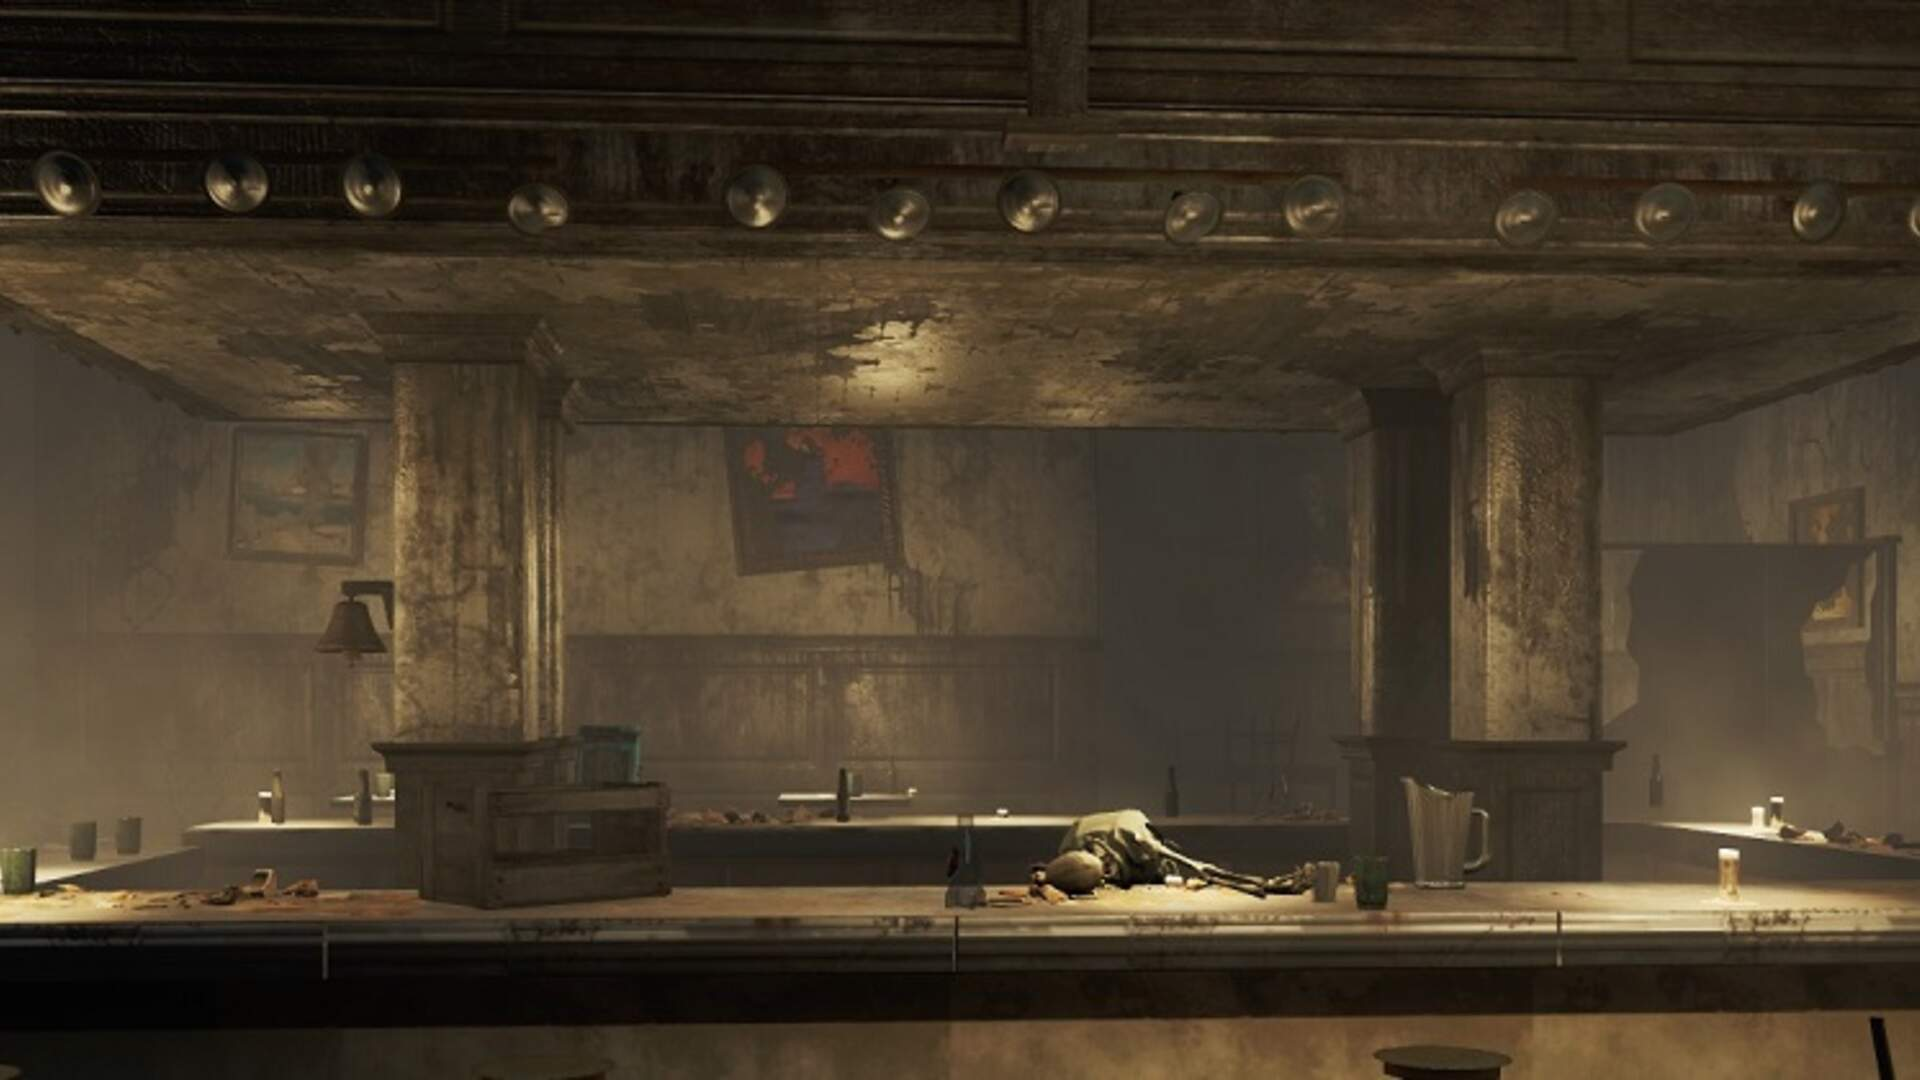 Fallout 4: How to Find the 'Cheers' Easter Egg